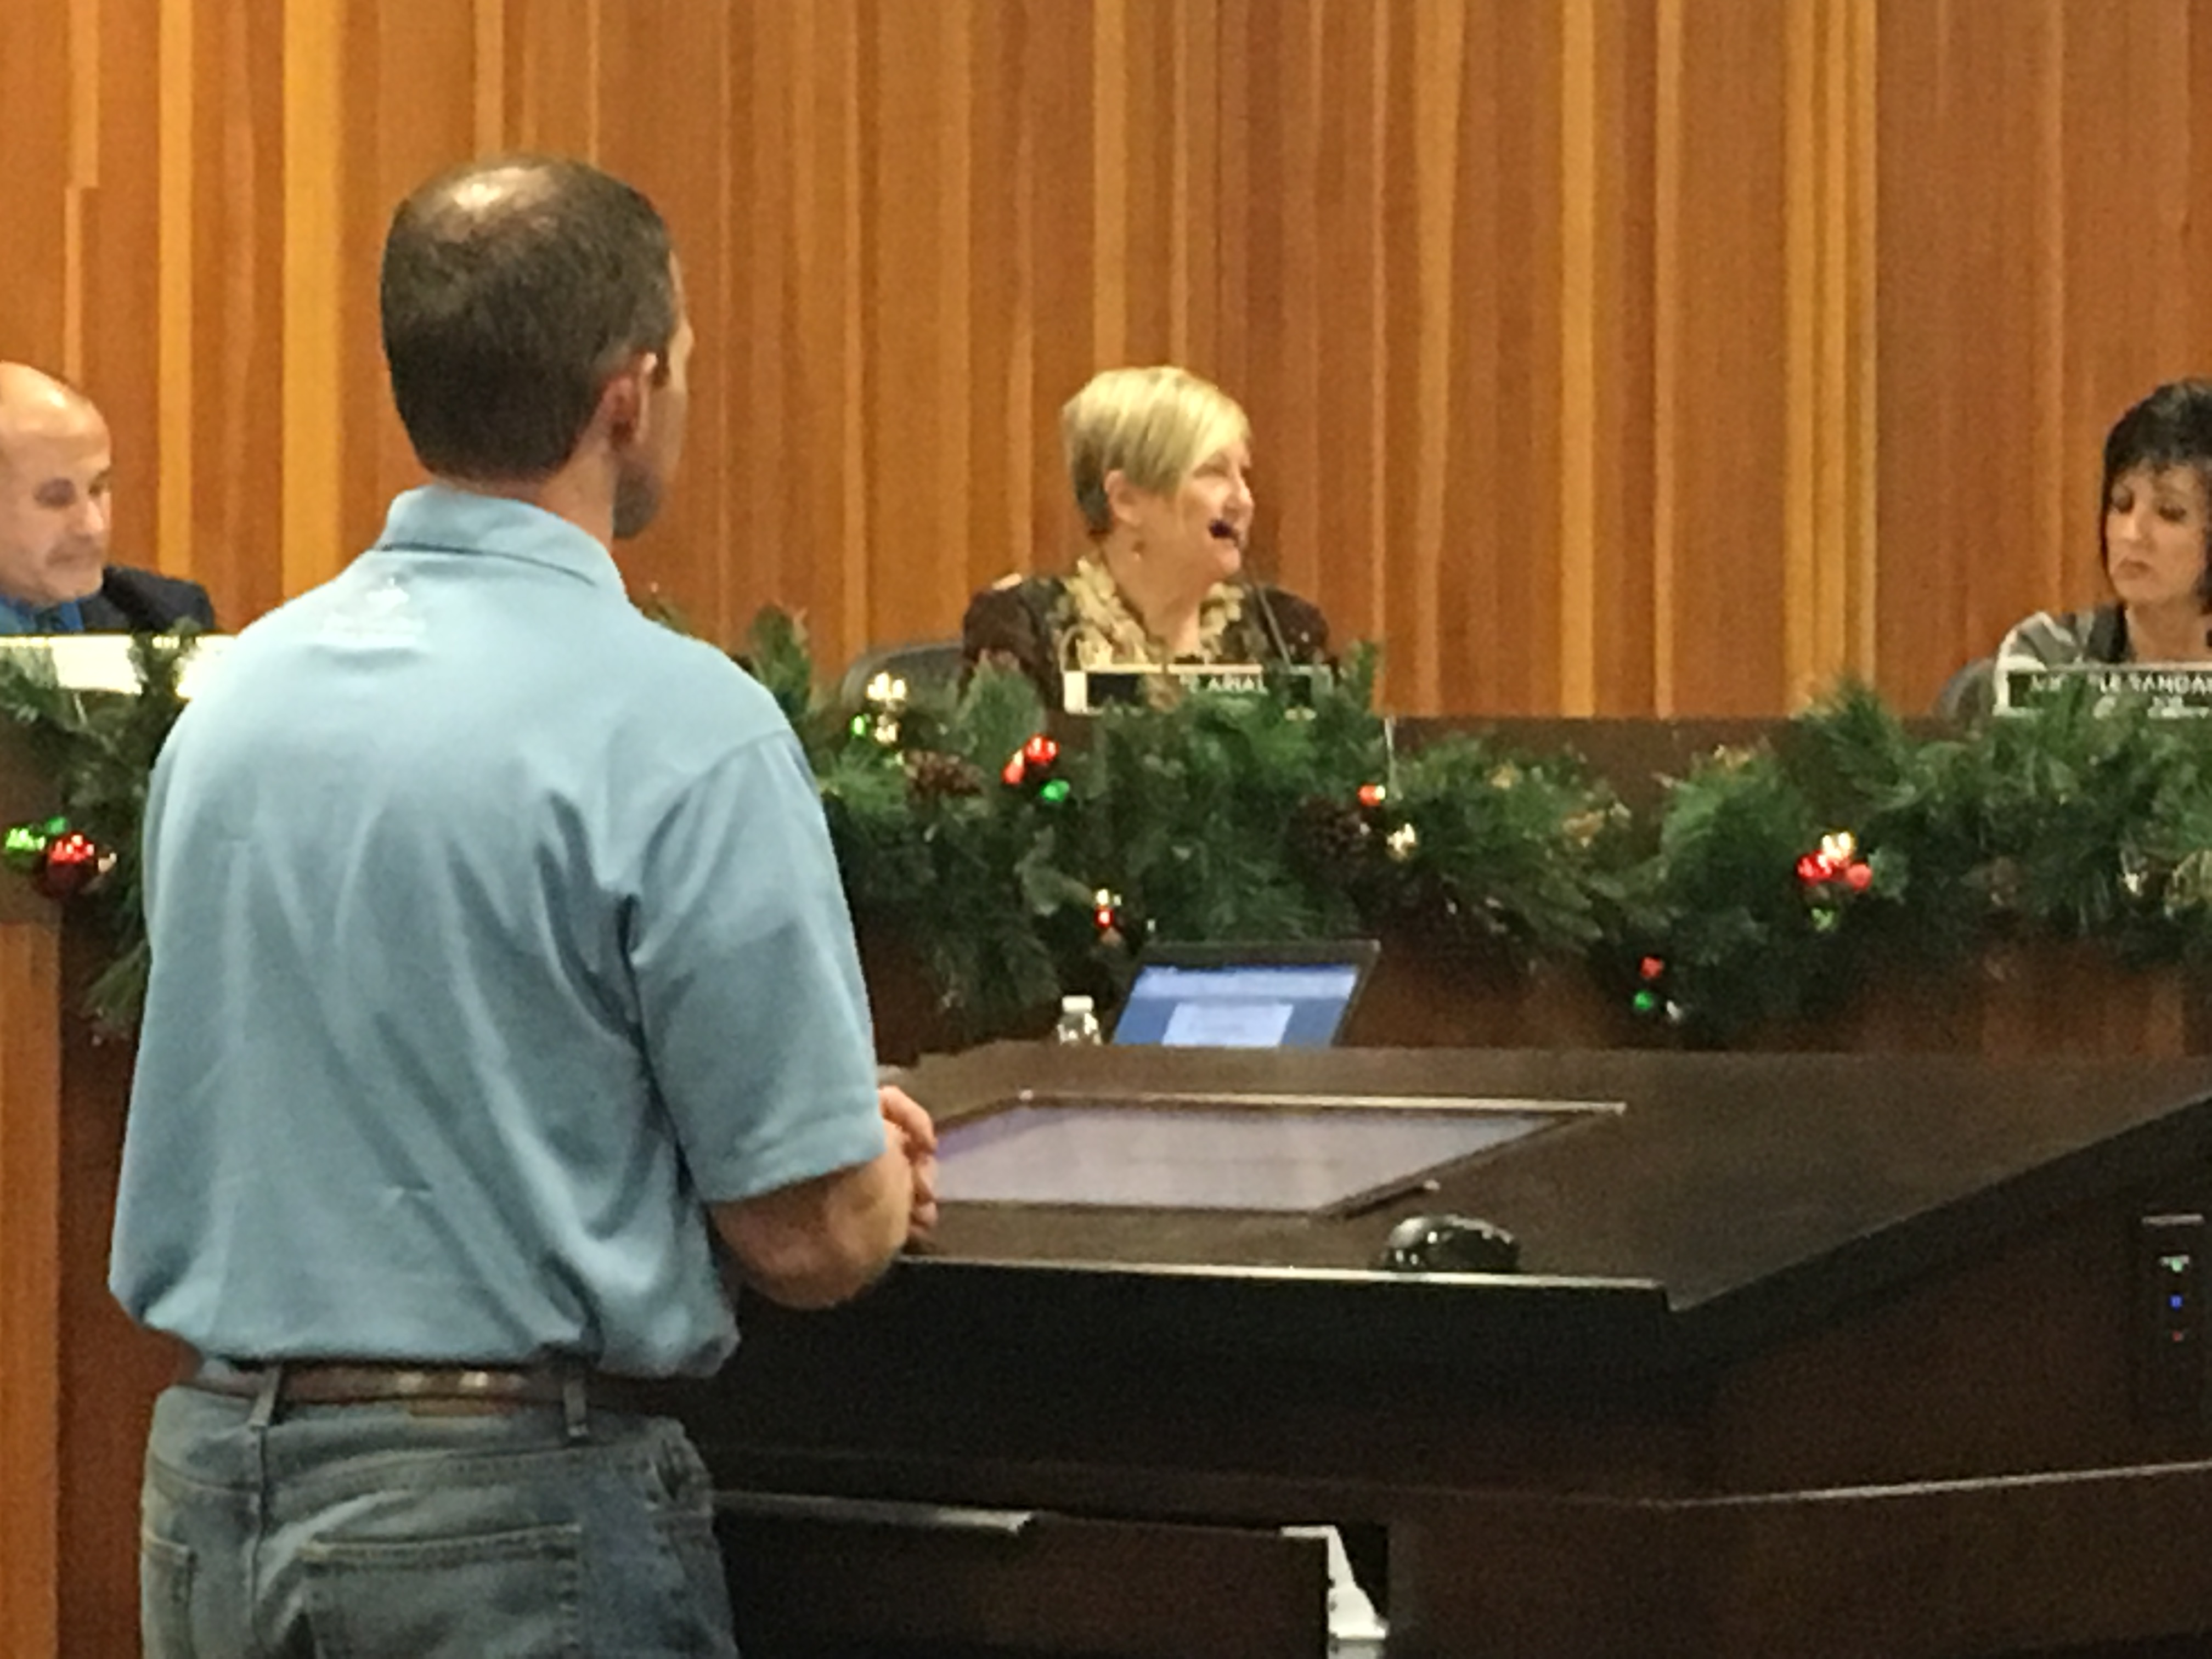 St. George City Council meeting, St. George, Utah, Dec. 3, 2015 | Photo by Tracie Sullivan, St. George News